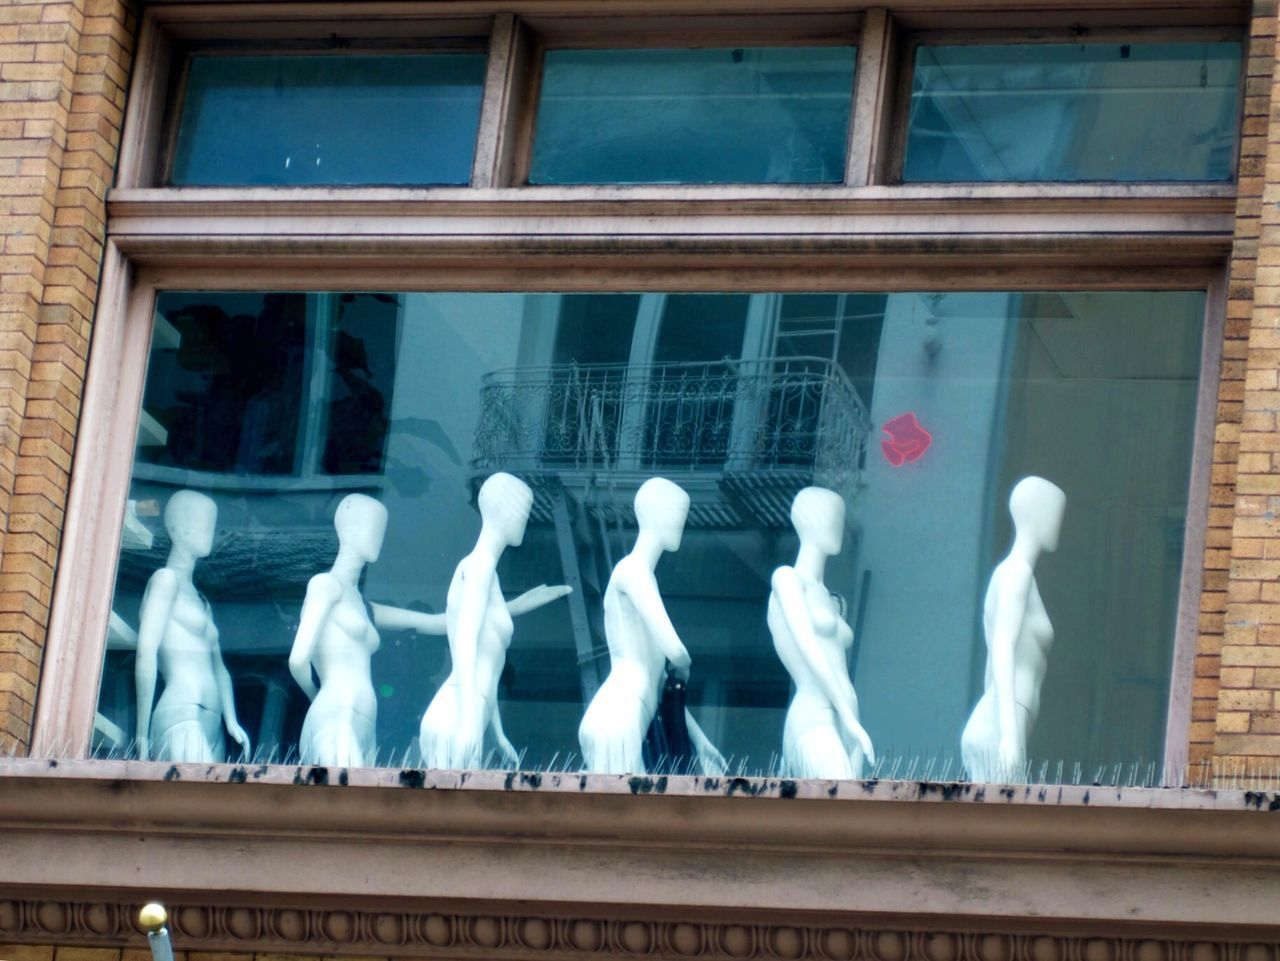 """Exibitionists"" Manequin Manequins Urbanexploration Urbanphotography Cityscapes Window Lookingup"